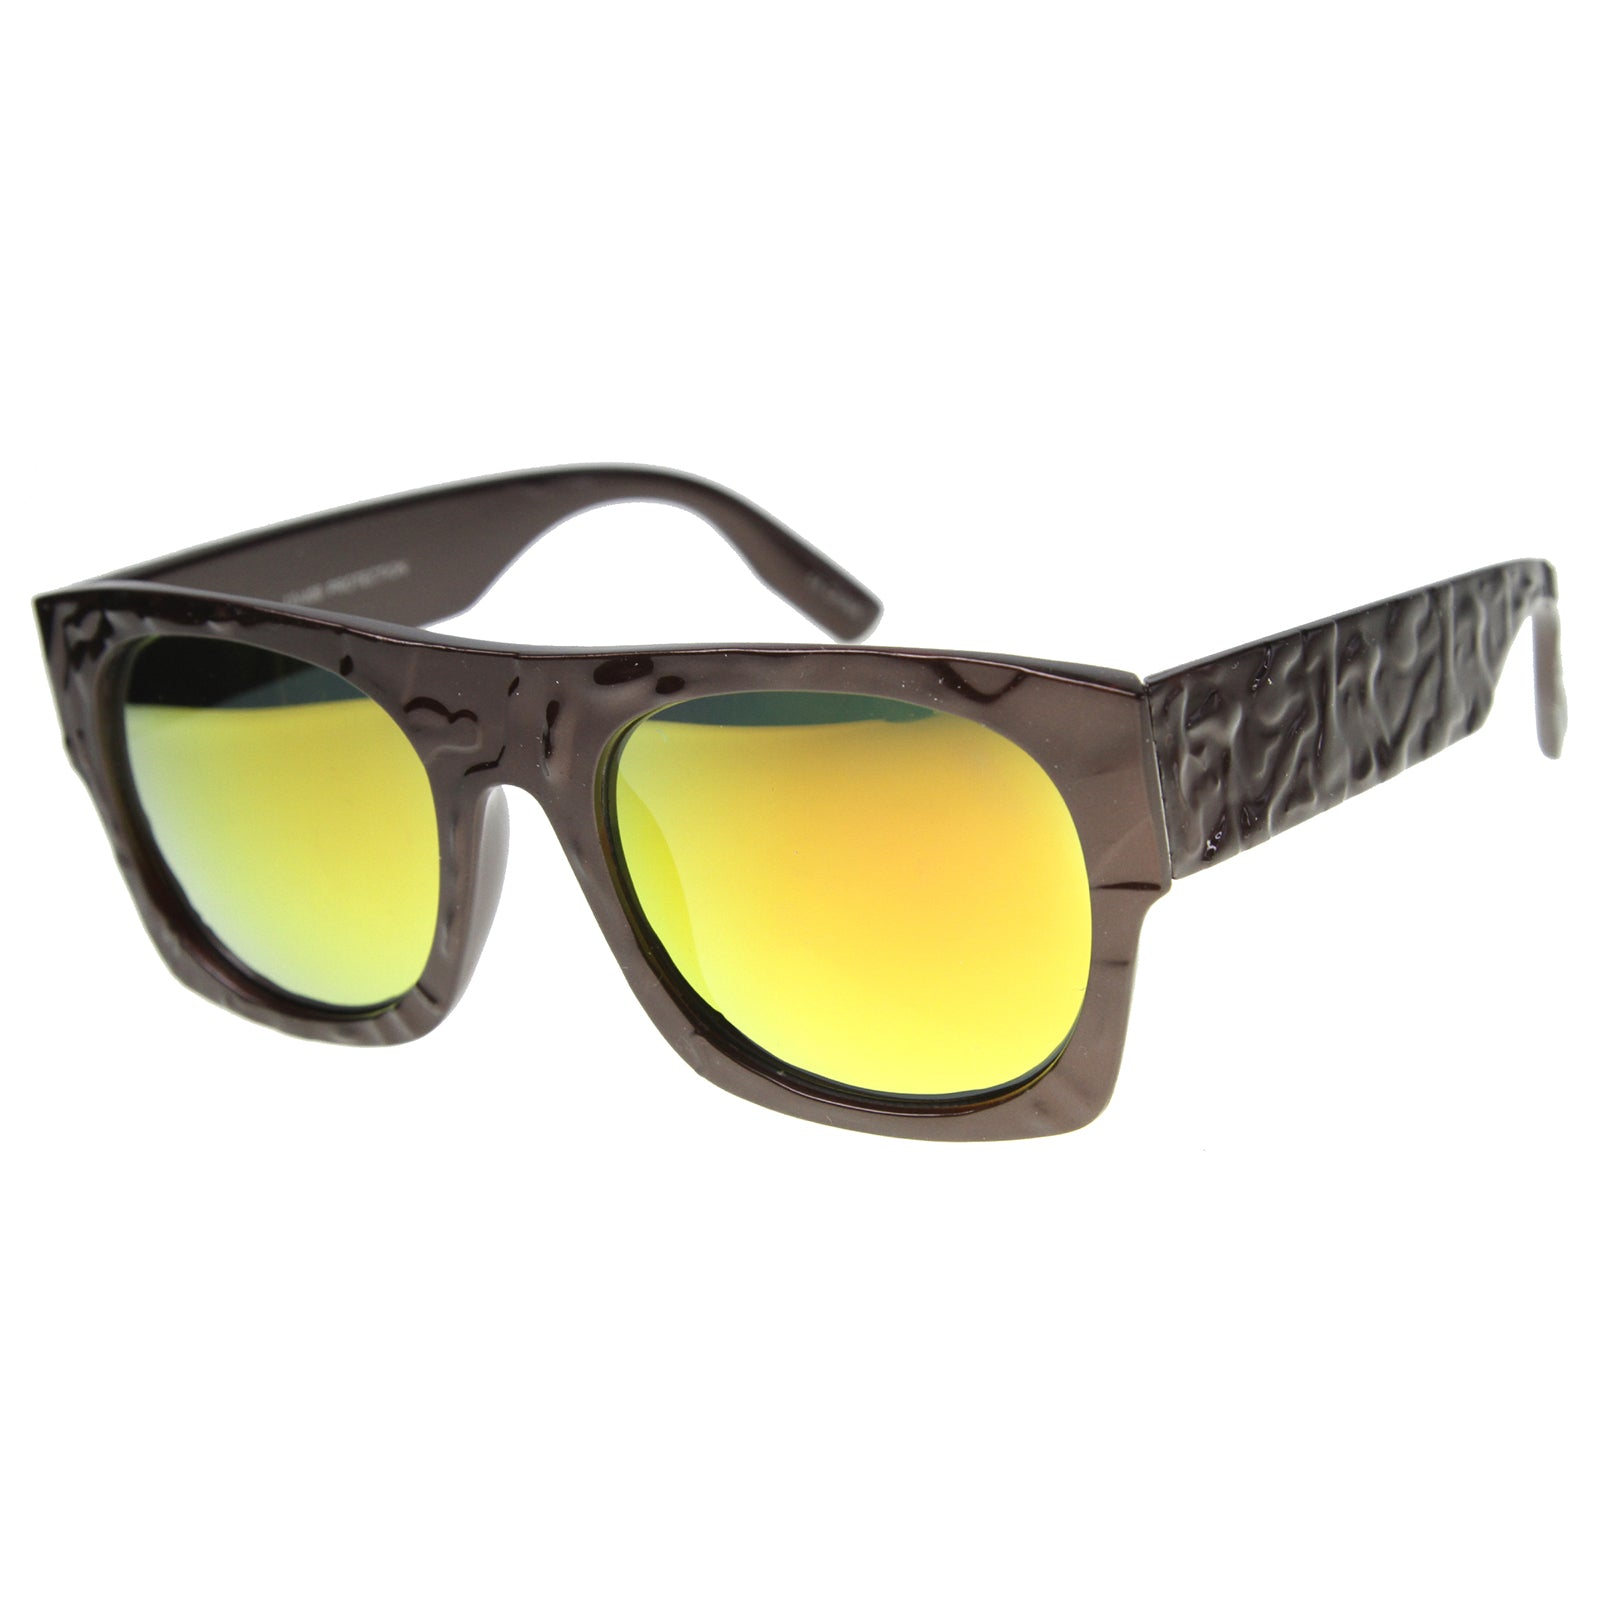 Unisex Rectangular Sunglasses With UV400 Protected Mirrored Lens - sunglass.la - 5